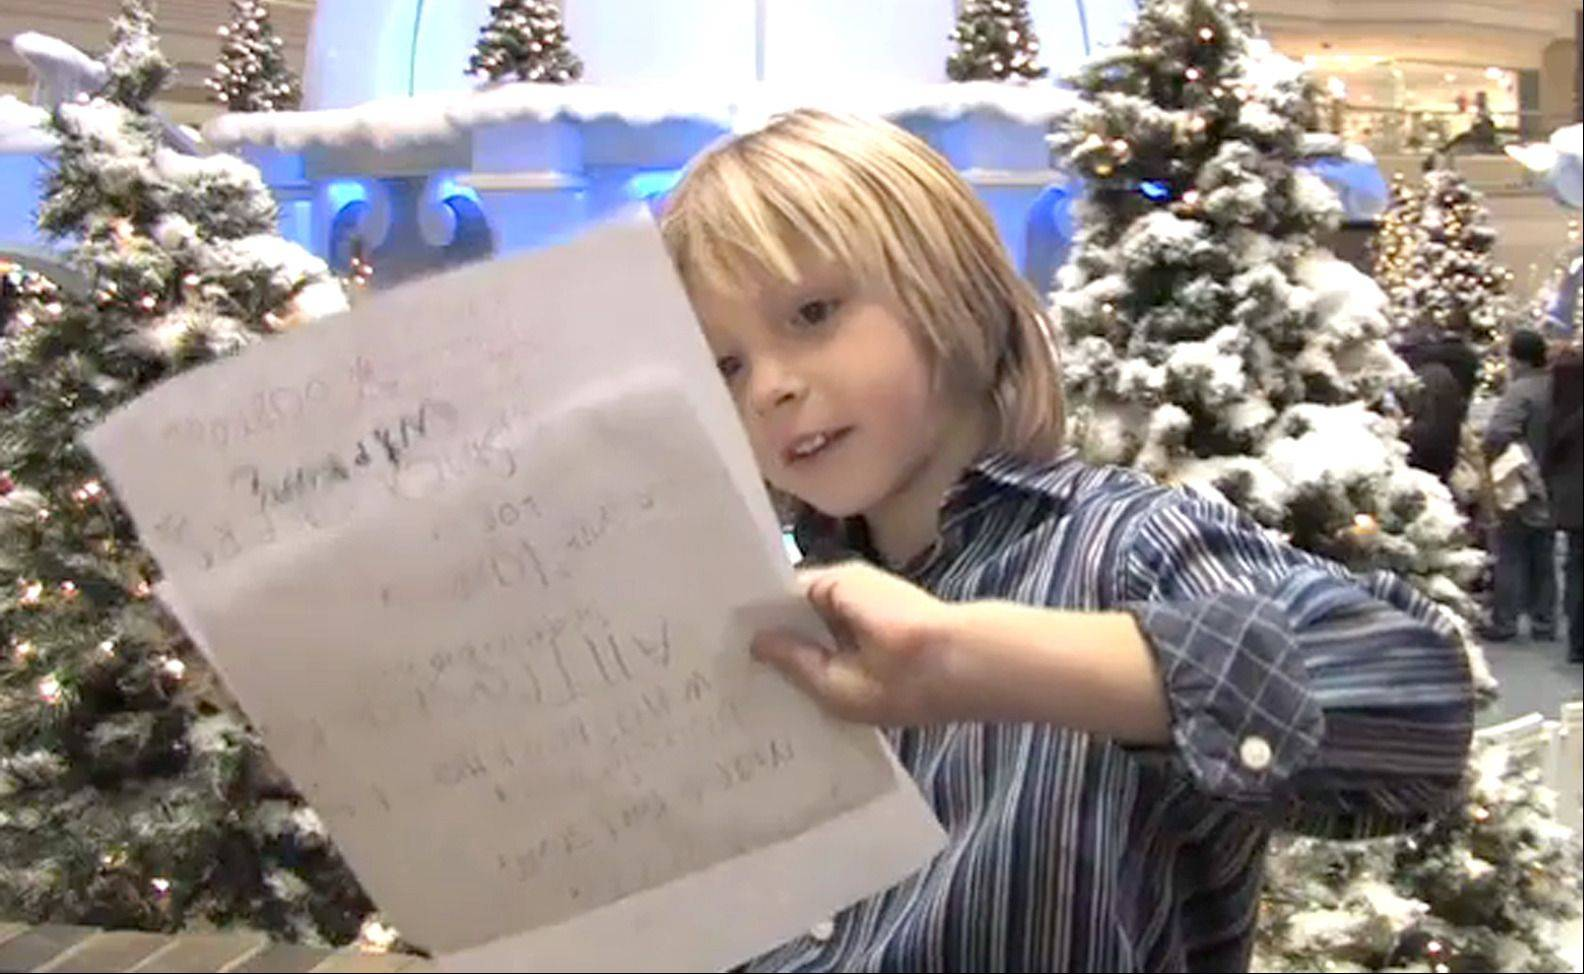 Cannon Dudley, 6, of Palatine checks his Christmas wish list while preparing to visit with Santa at Woodfield Mall in Schaumburg. Dudley is wishing for Angry Birds stuff, an iPhone, a 3-D DS, the Avengers movie ...